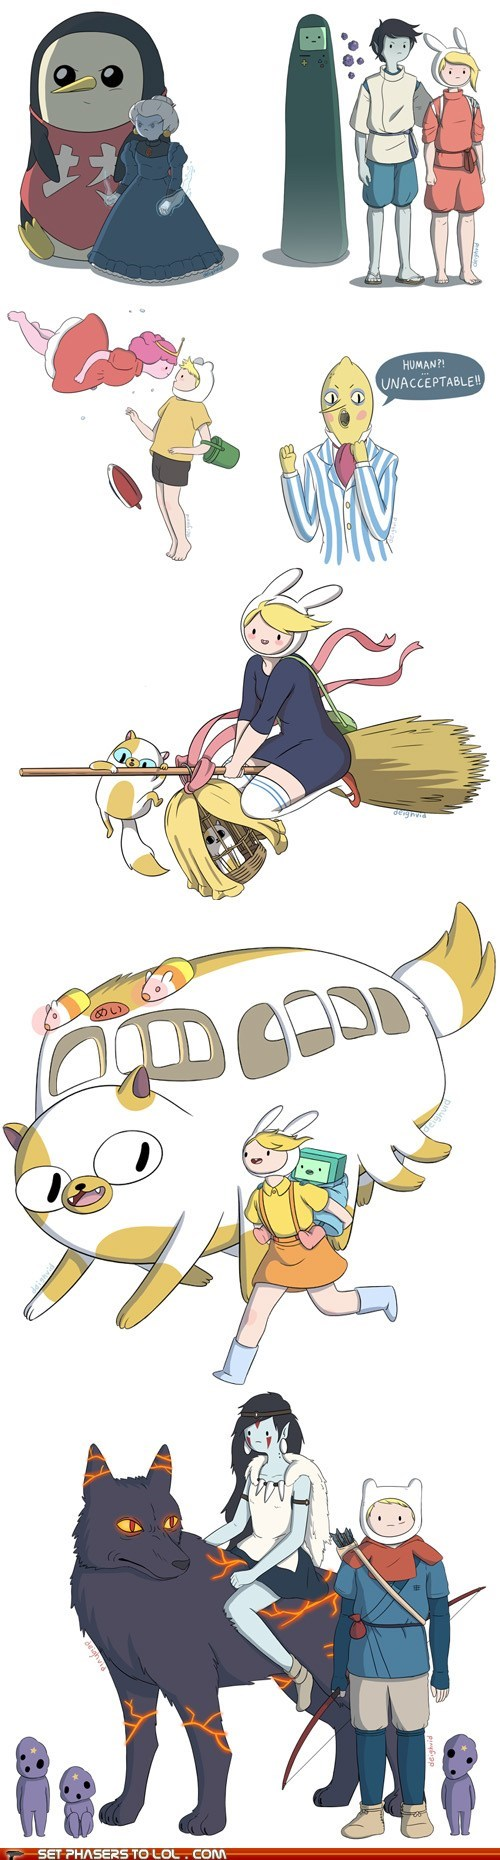 adventure time crossover Fan Art Hayao Miyazaki howls-moving-castle kikis-delivery-service mashup my neighbor totoro spirited away studio ghibli - 6345237504